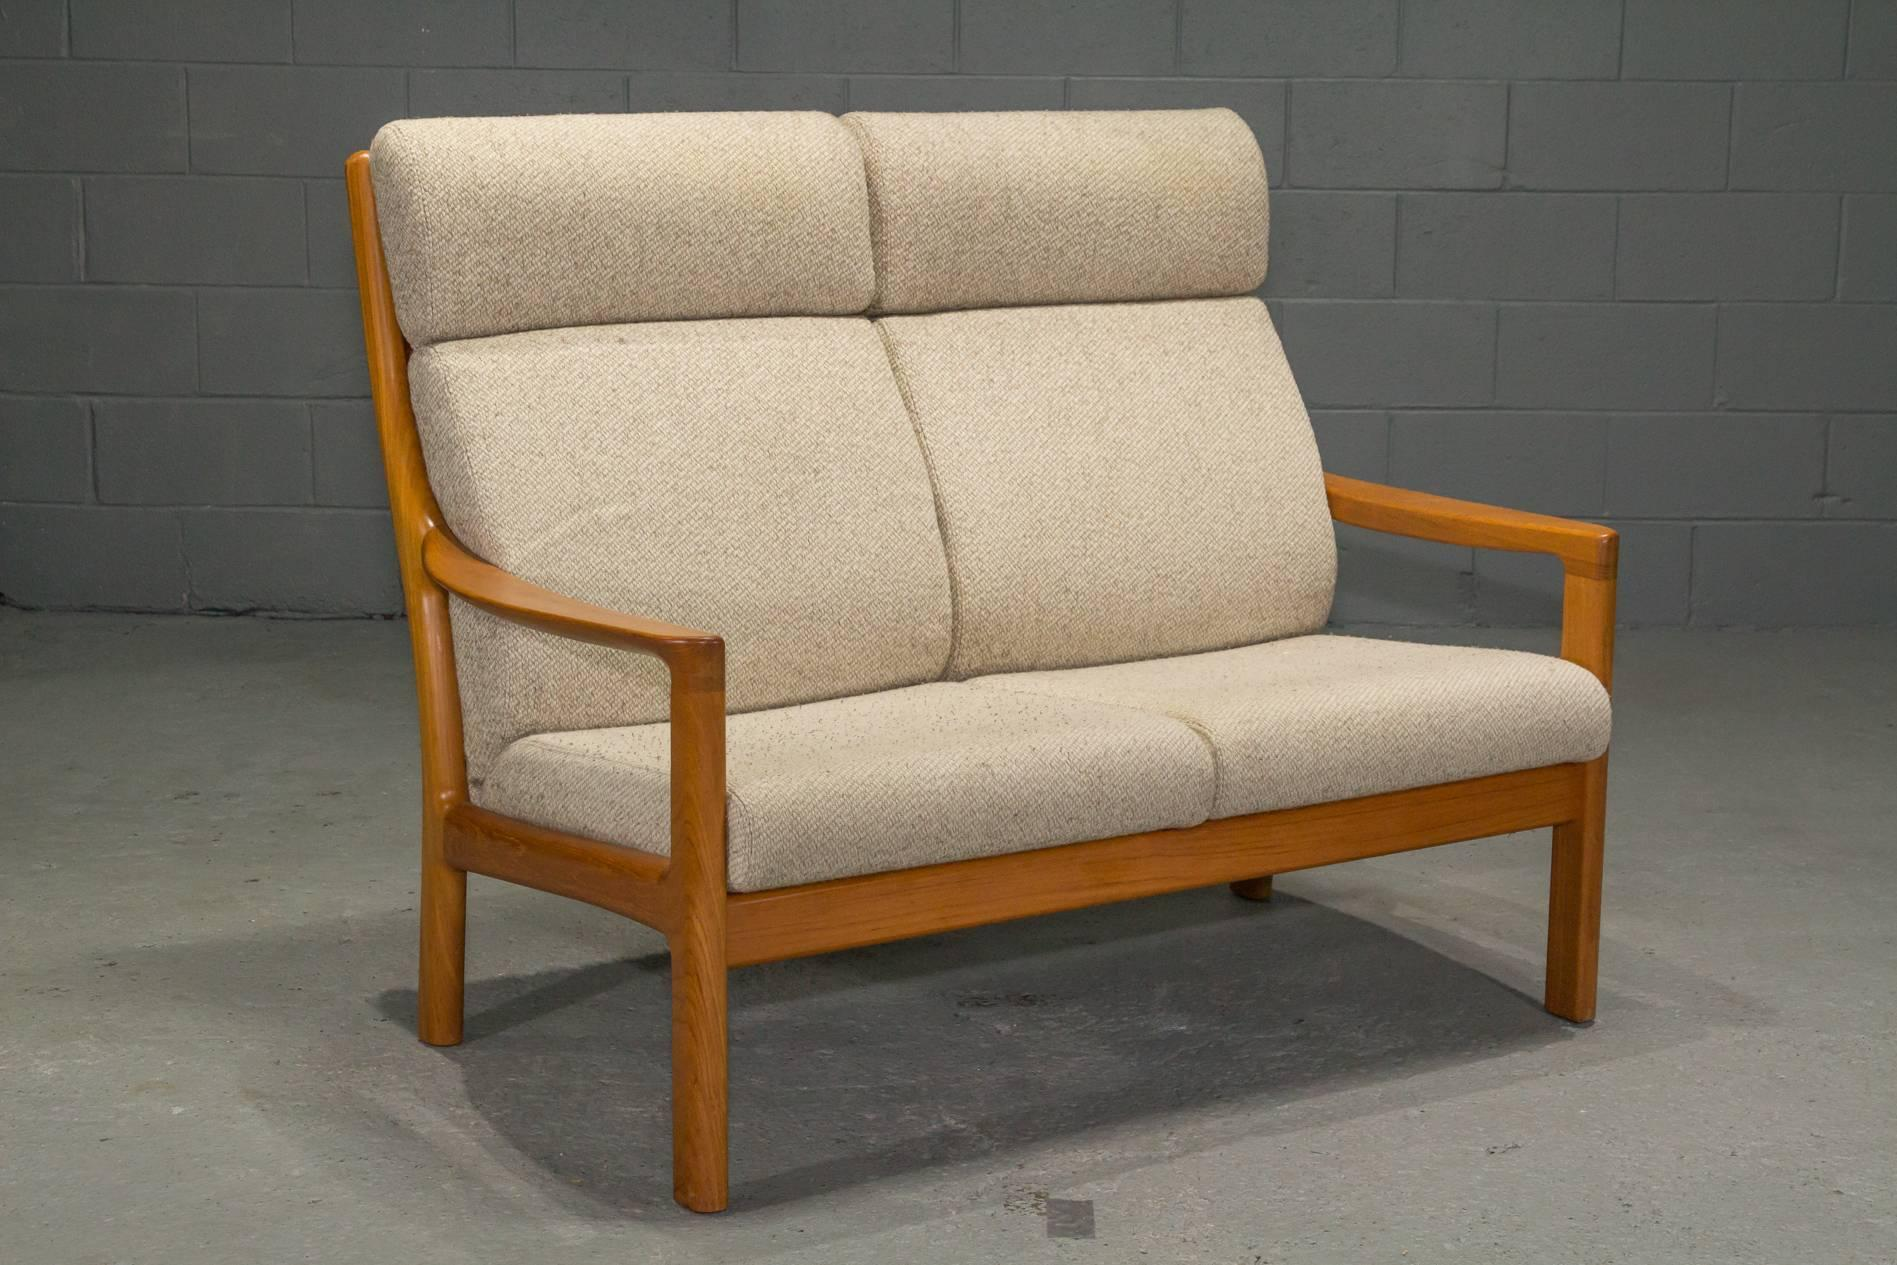 MidCentury Modern Teak High Back Loveseat By Johannes Andersen For CFC  Silkeborg For Sale High Back Loveseat C10